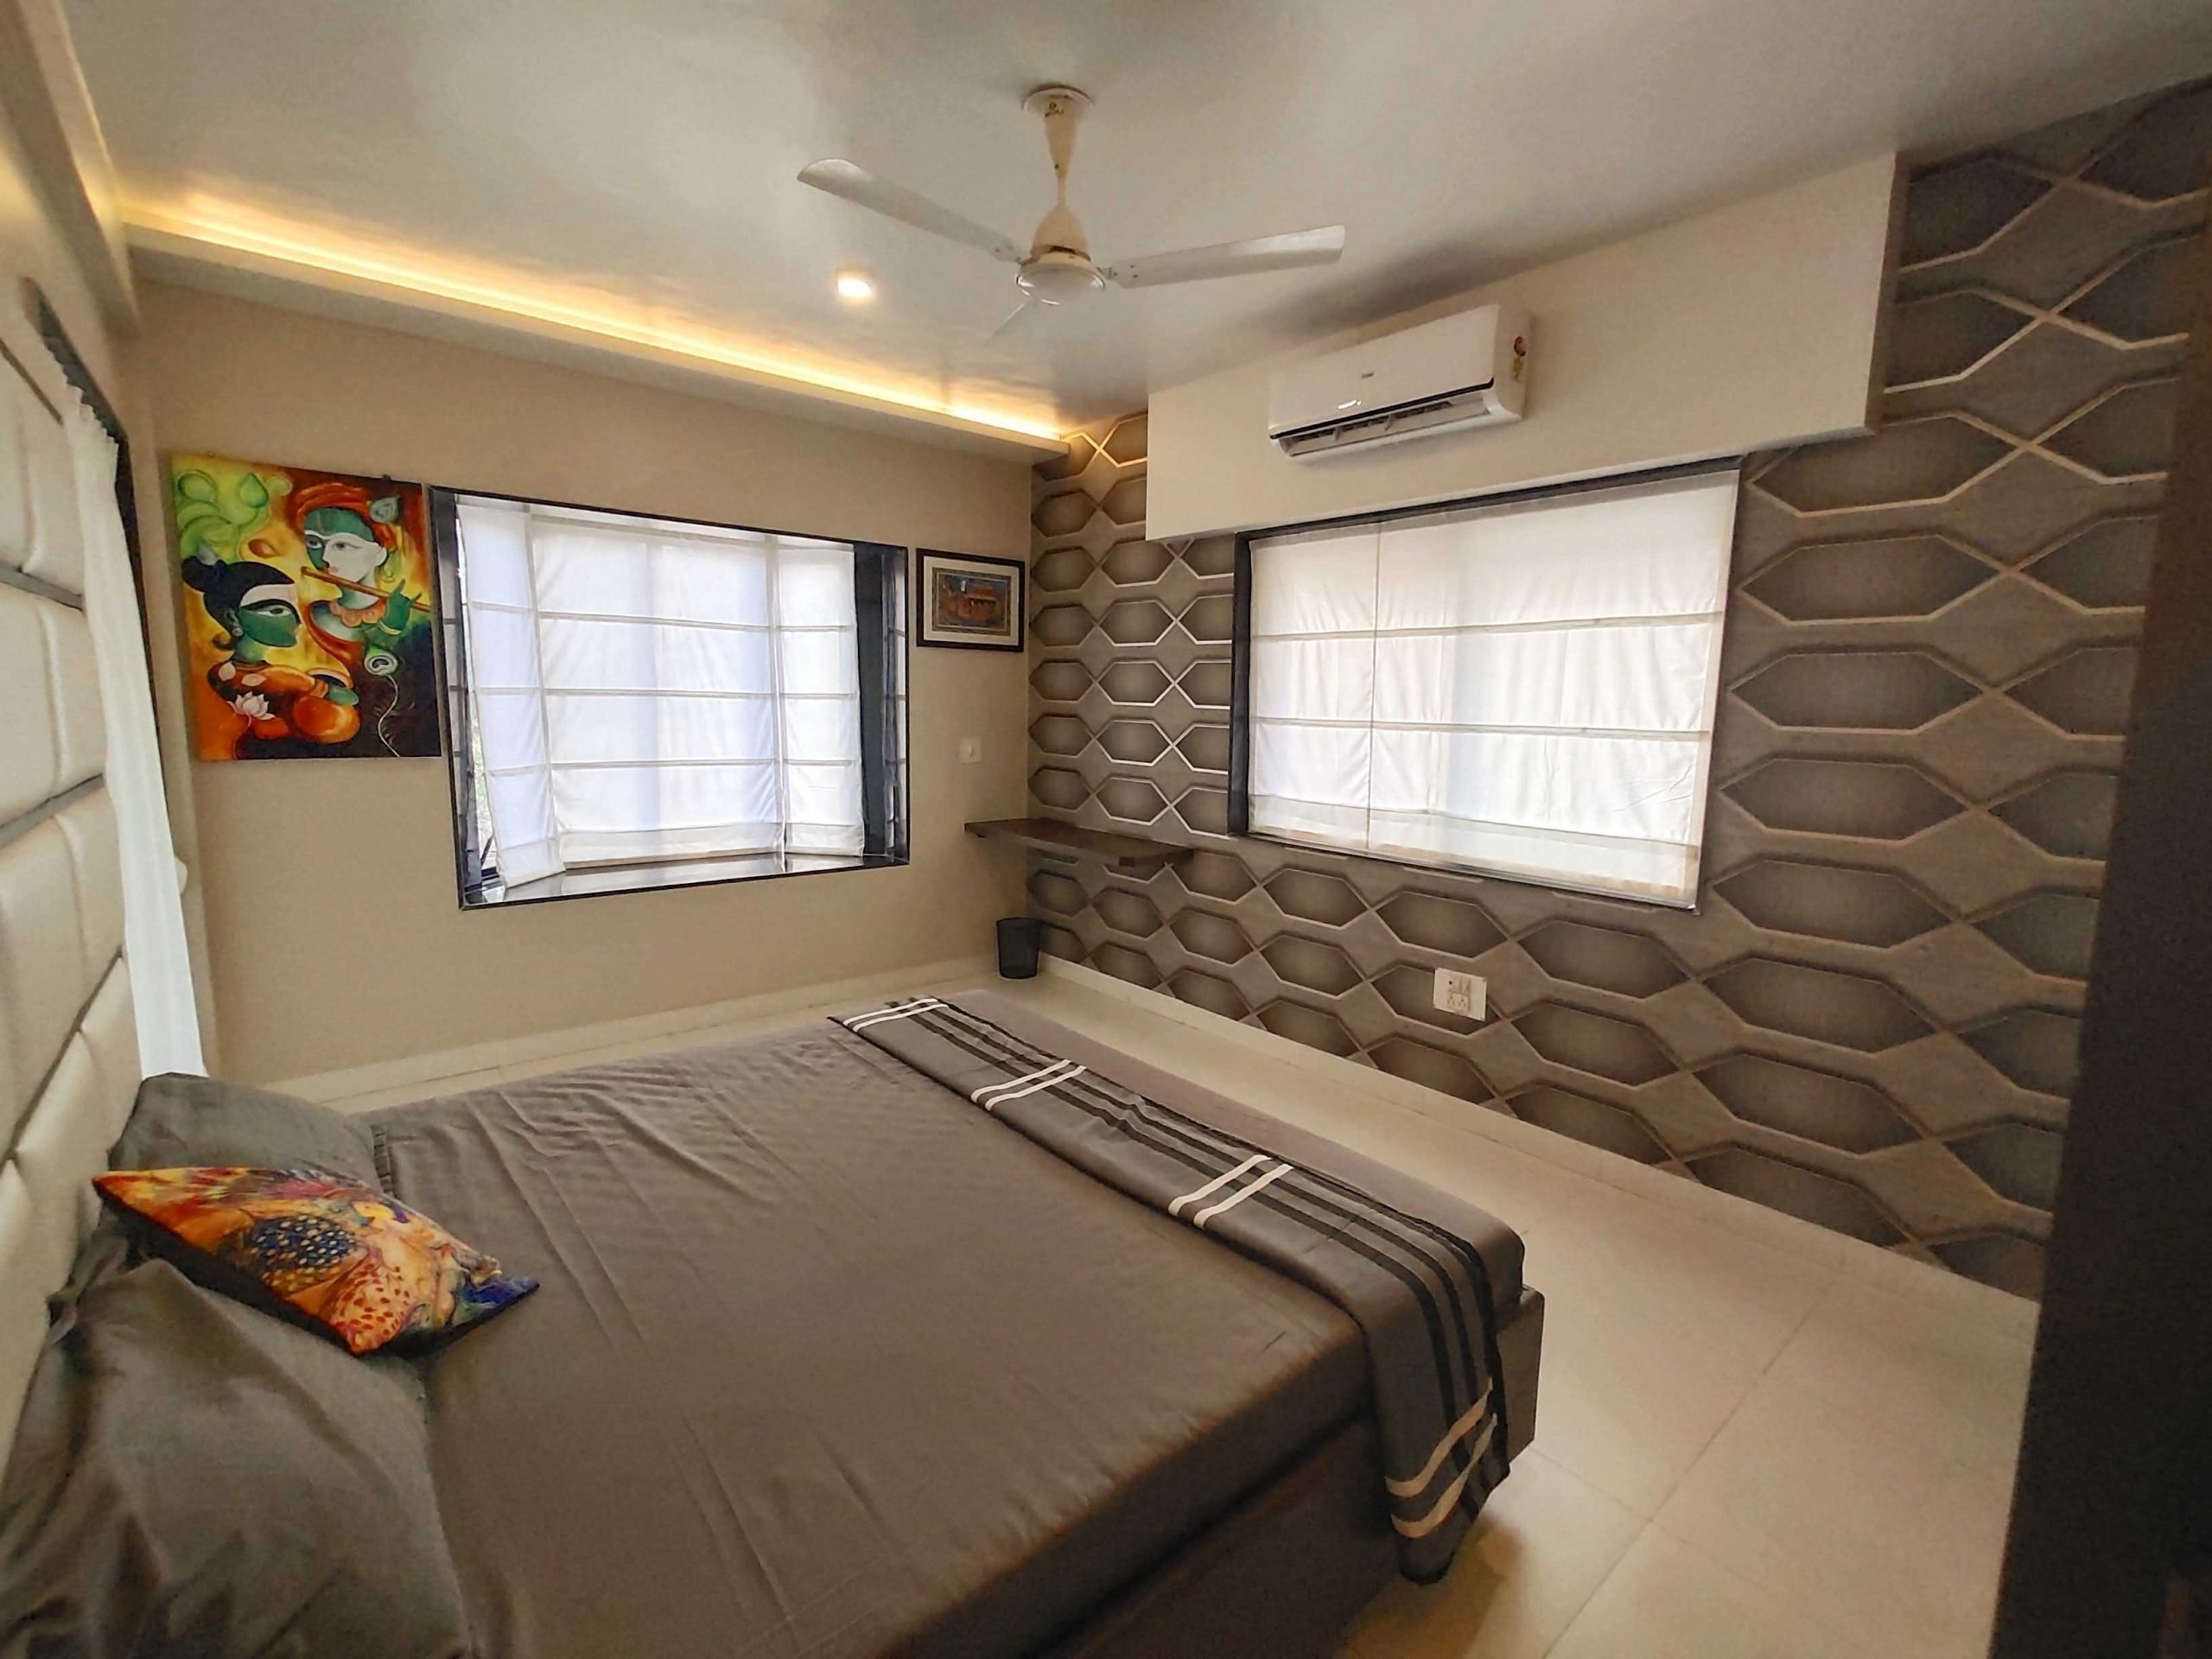 Bedroom with AC